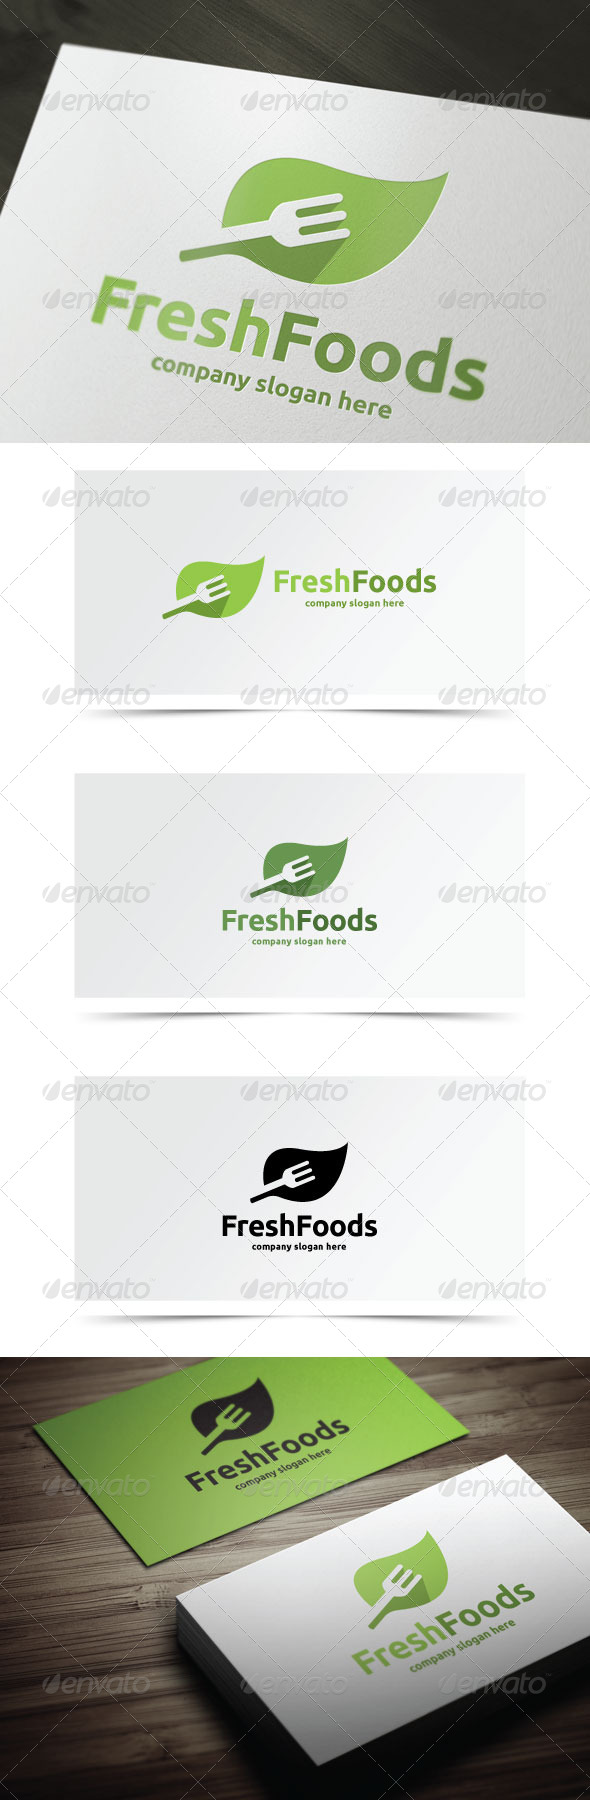 GraphicRiver Fresh Foods 7743359